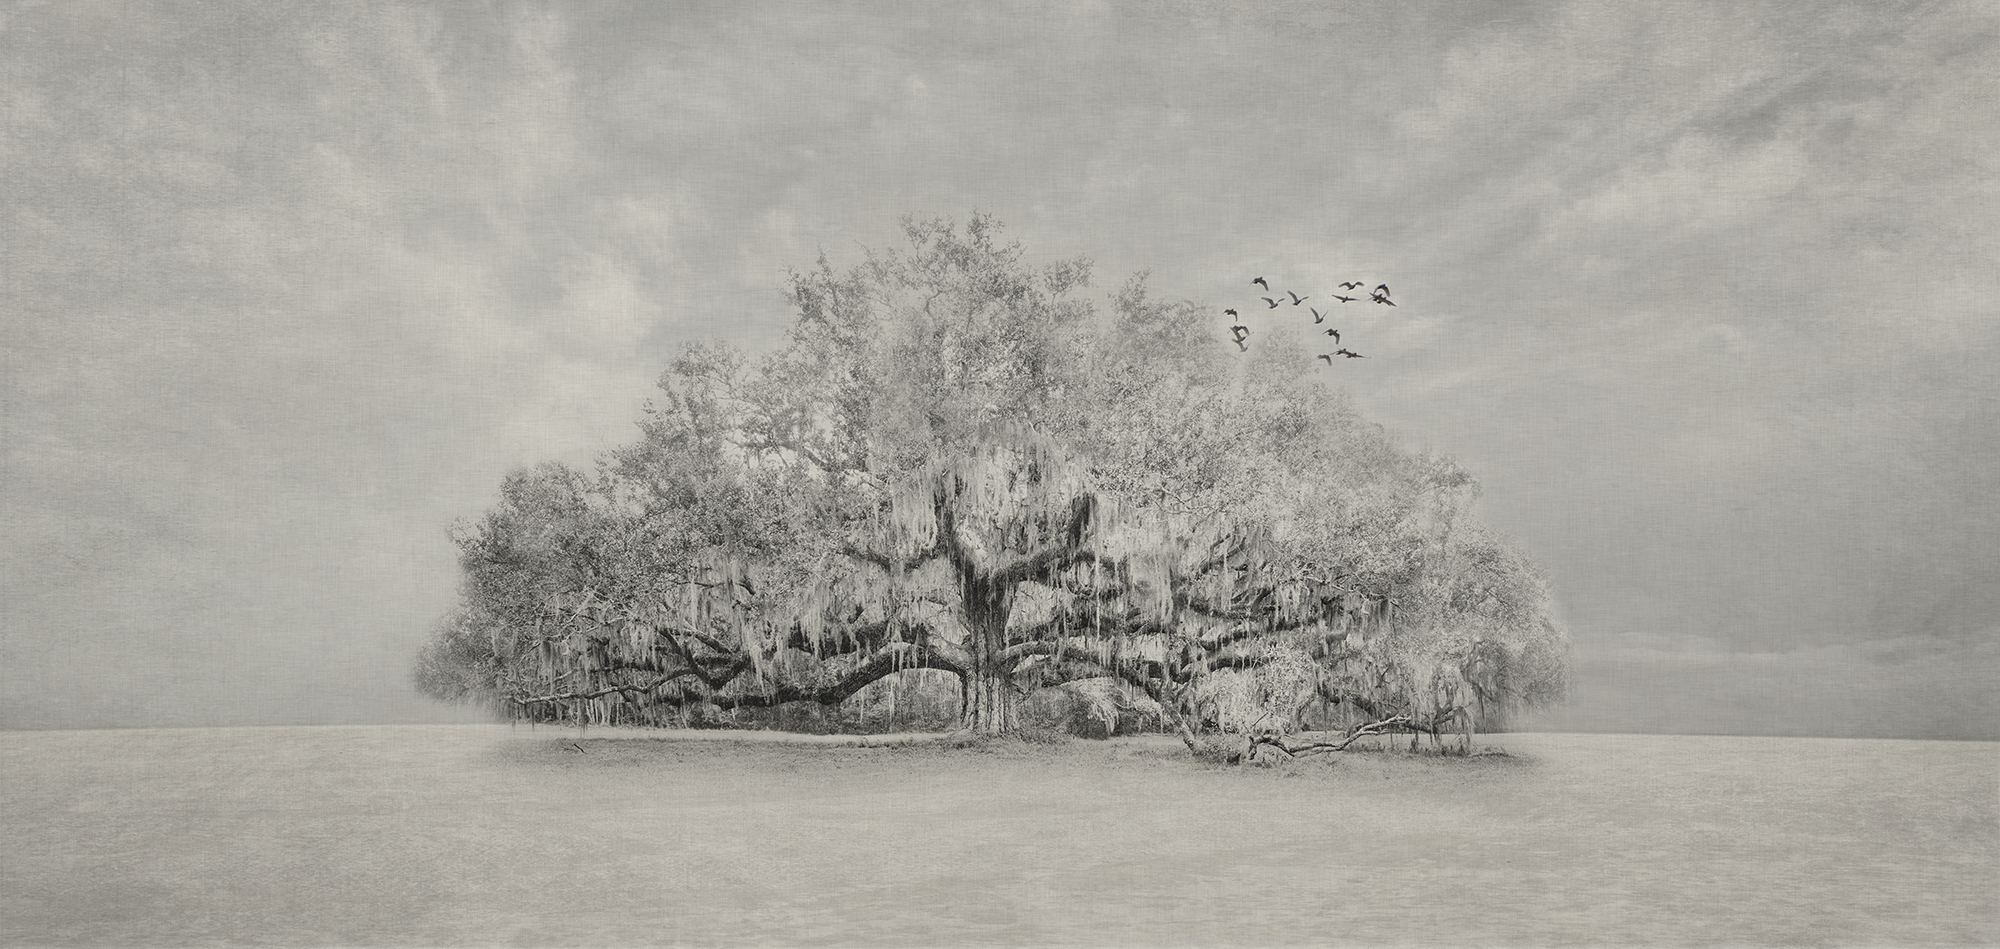 New 1 - Live Oak and Birds